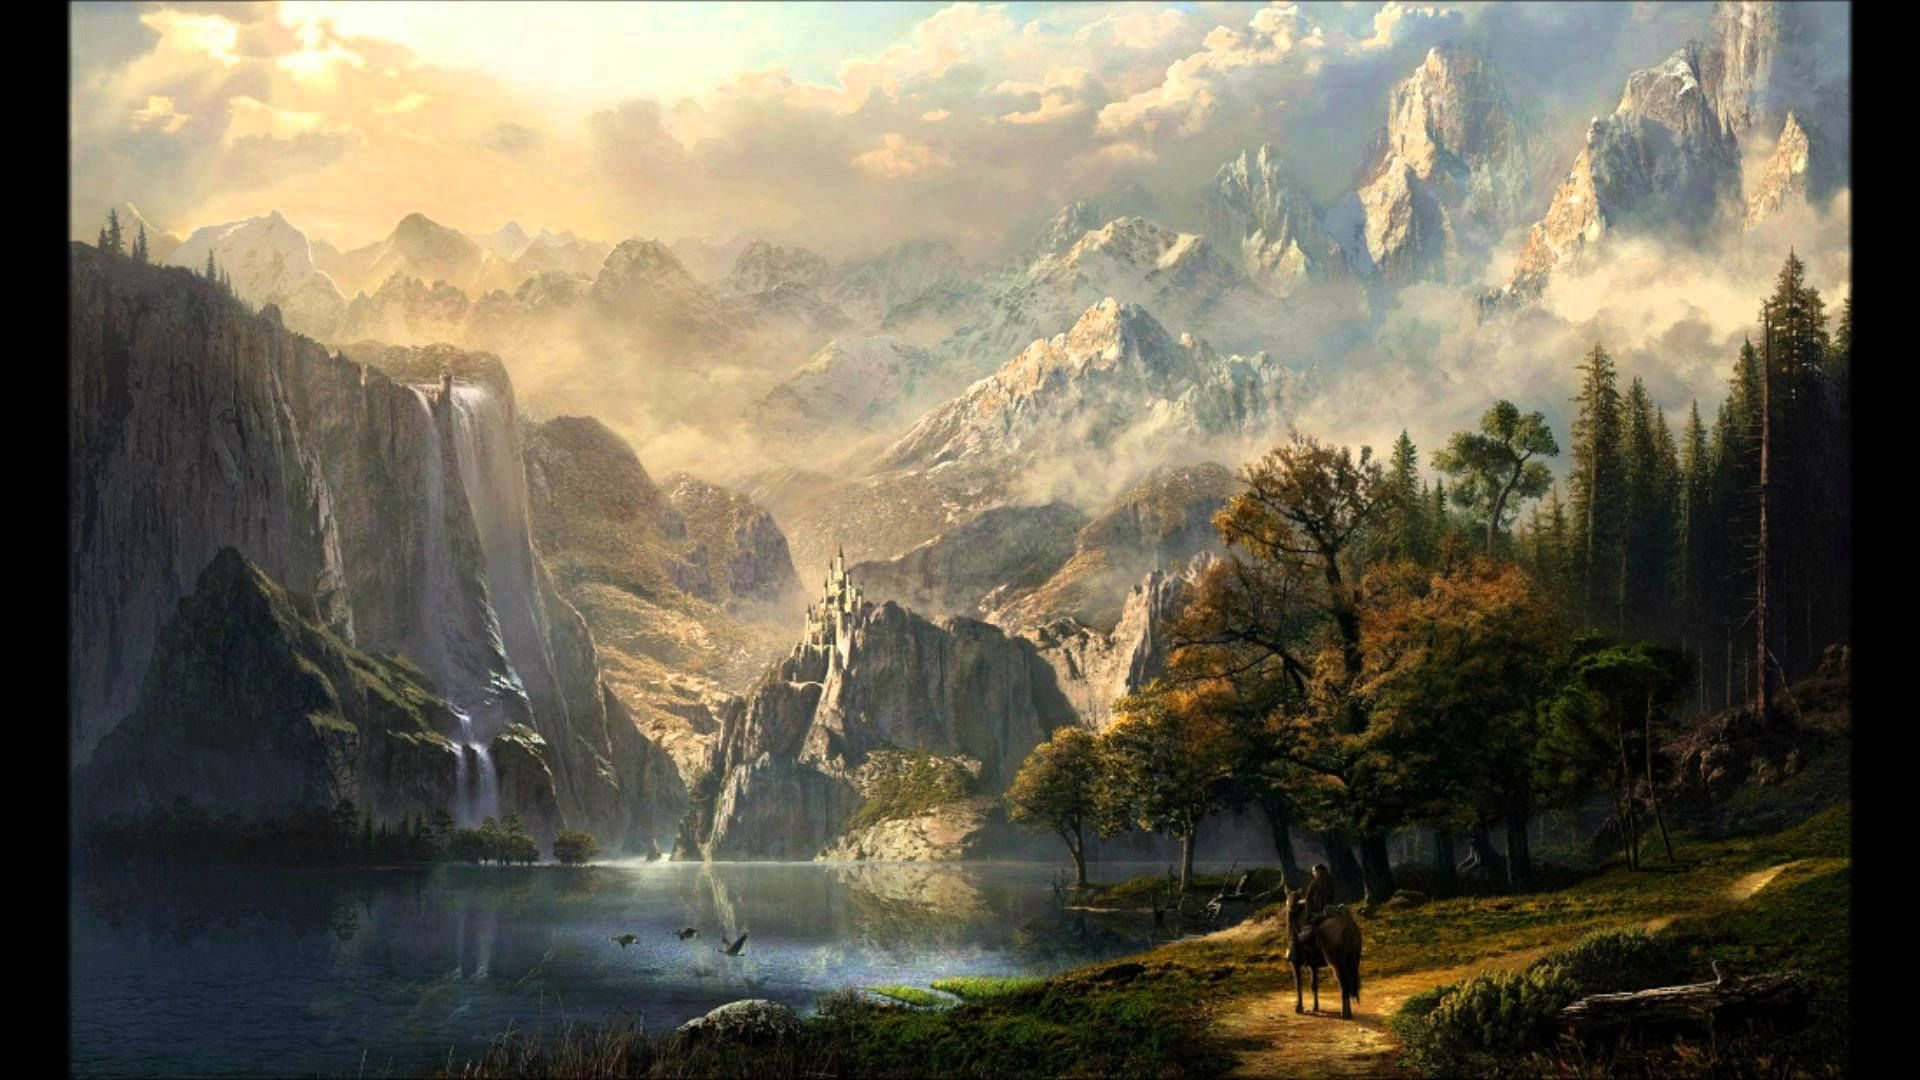 Image May Contain Cloud Sky Mountain Tree Outdoor Nature And Water Fantasy Landscape Matte Painting Landscape Features